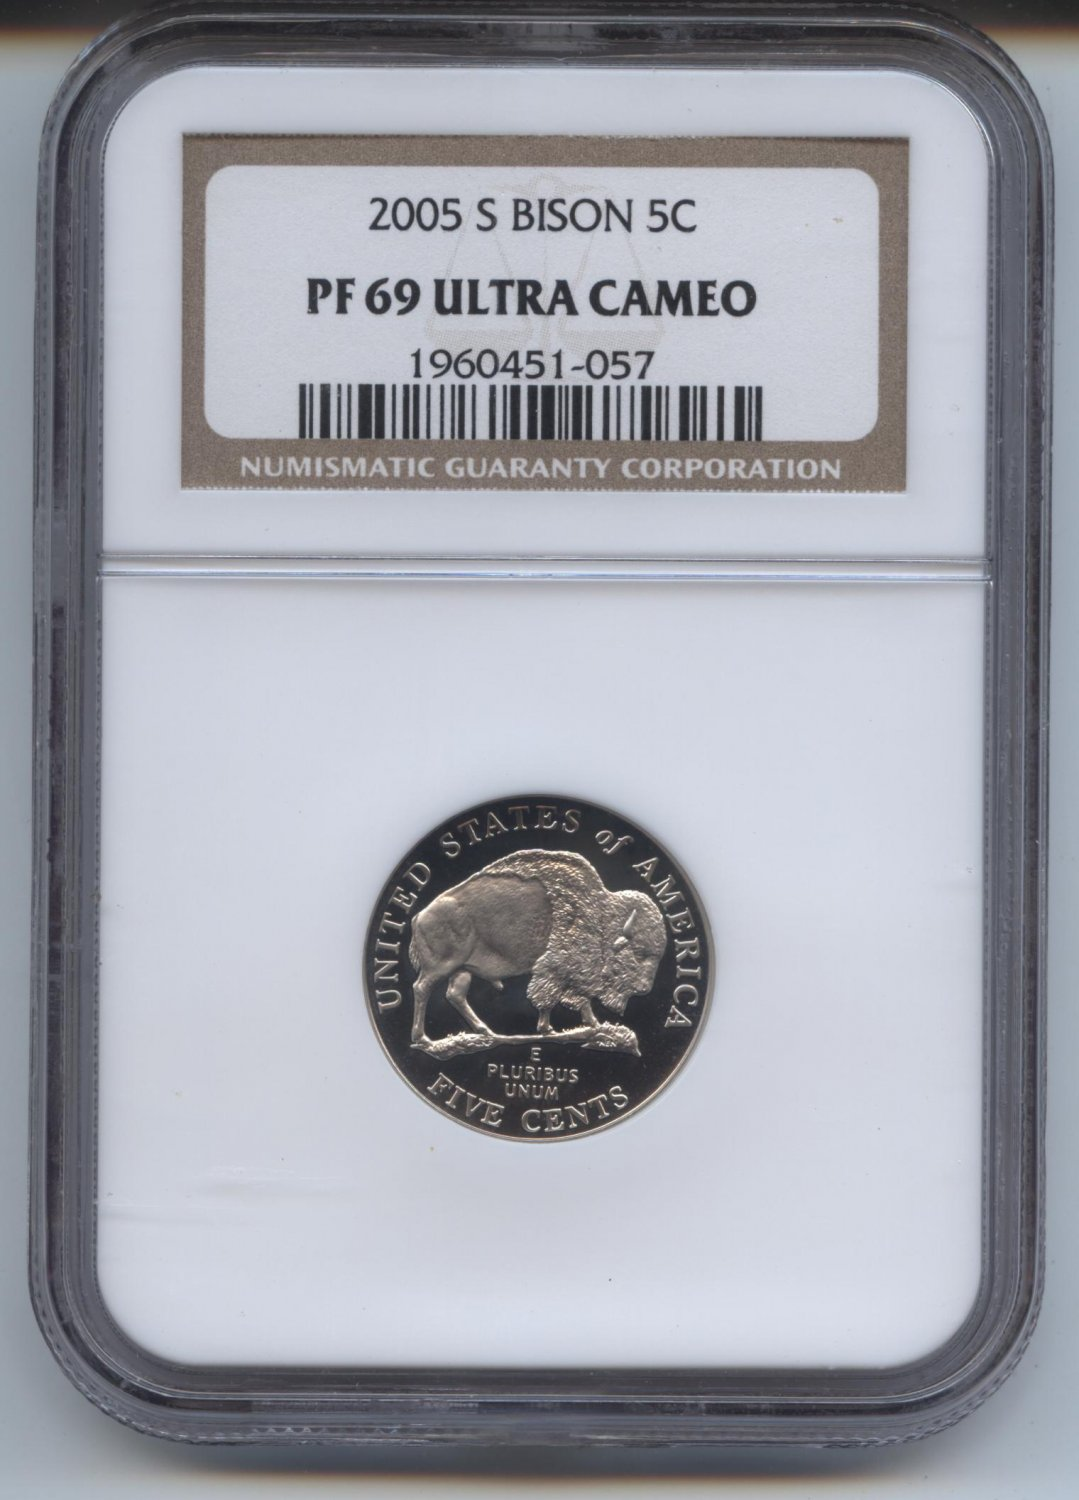 2005 proof 69 ultra cameo bison jefferson nickel